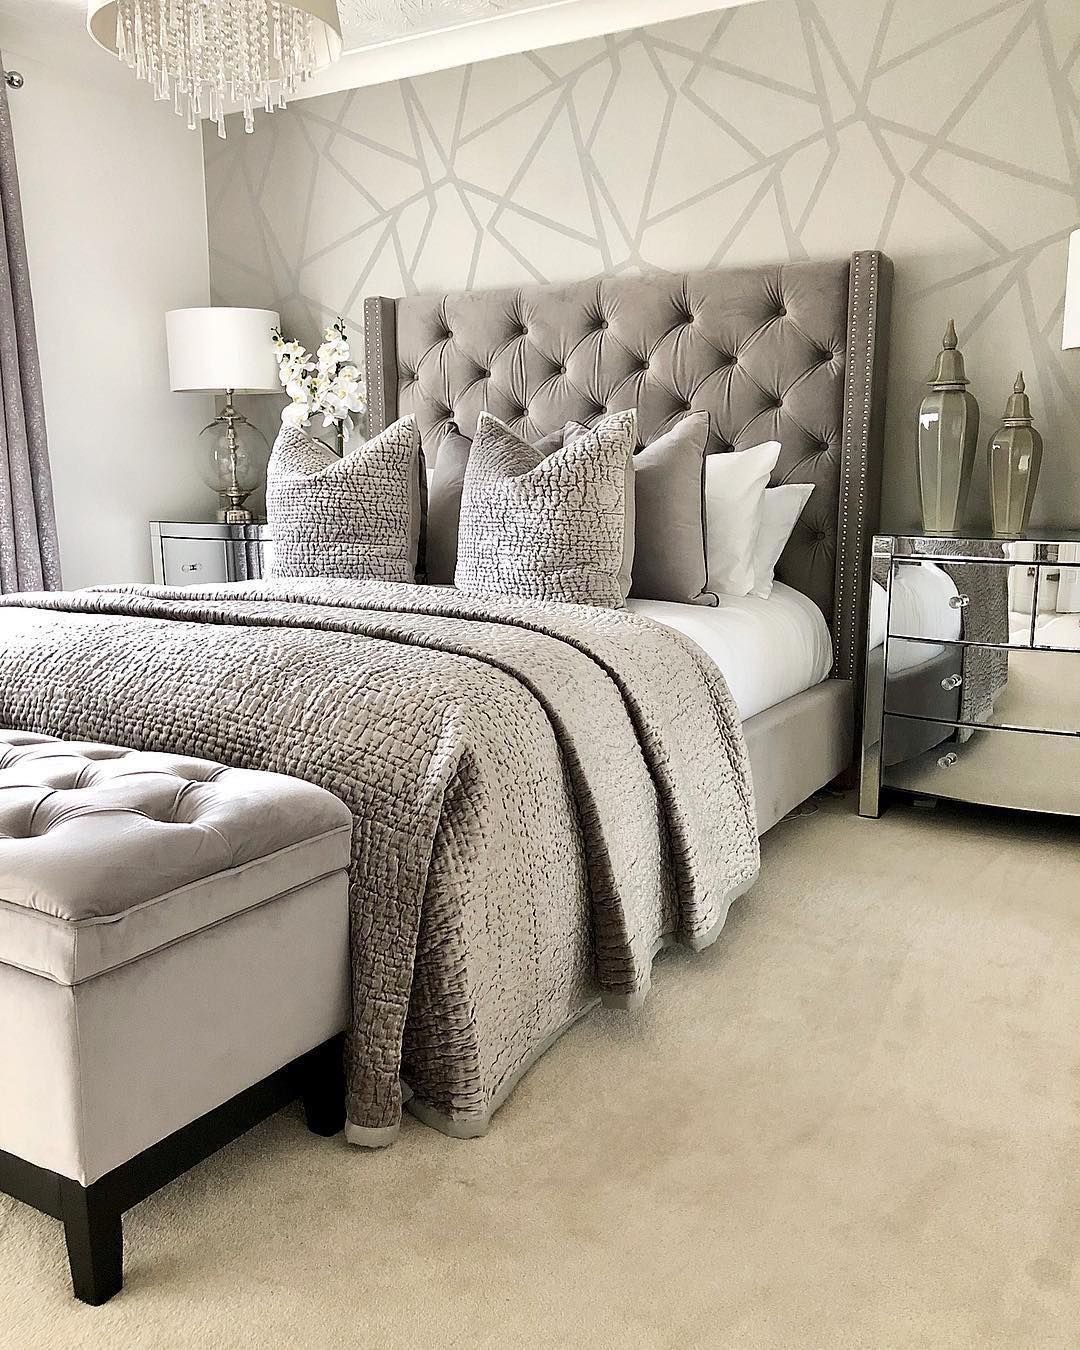 Lolyndecor on instagram  cloving the textures and tones home sweet also best interior design images in rh pinterest